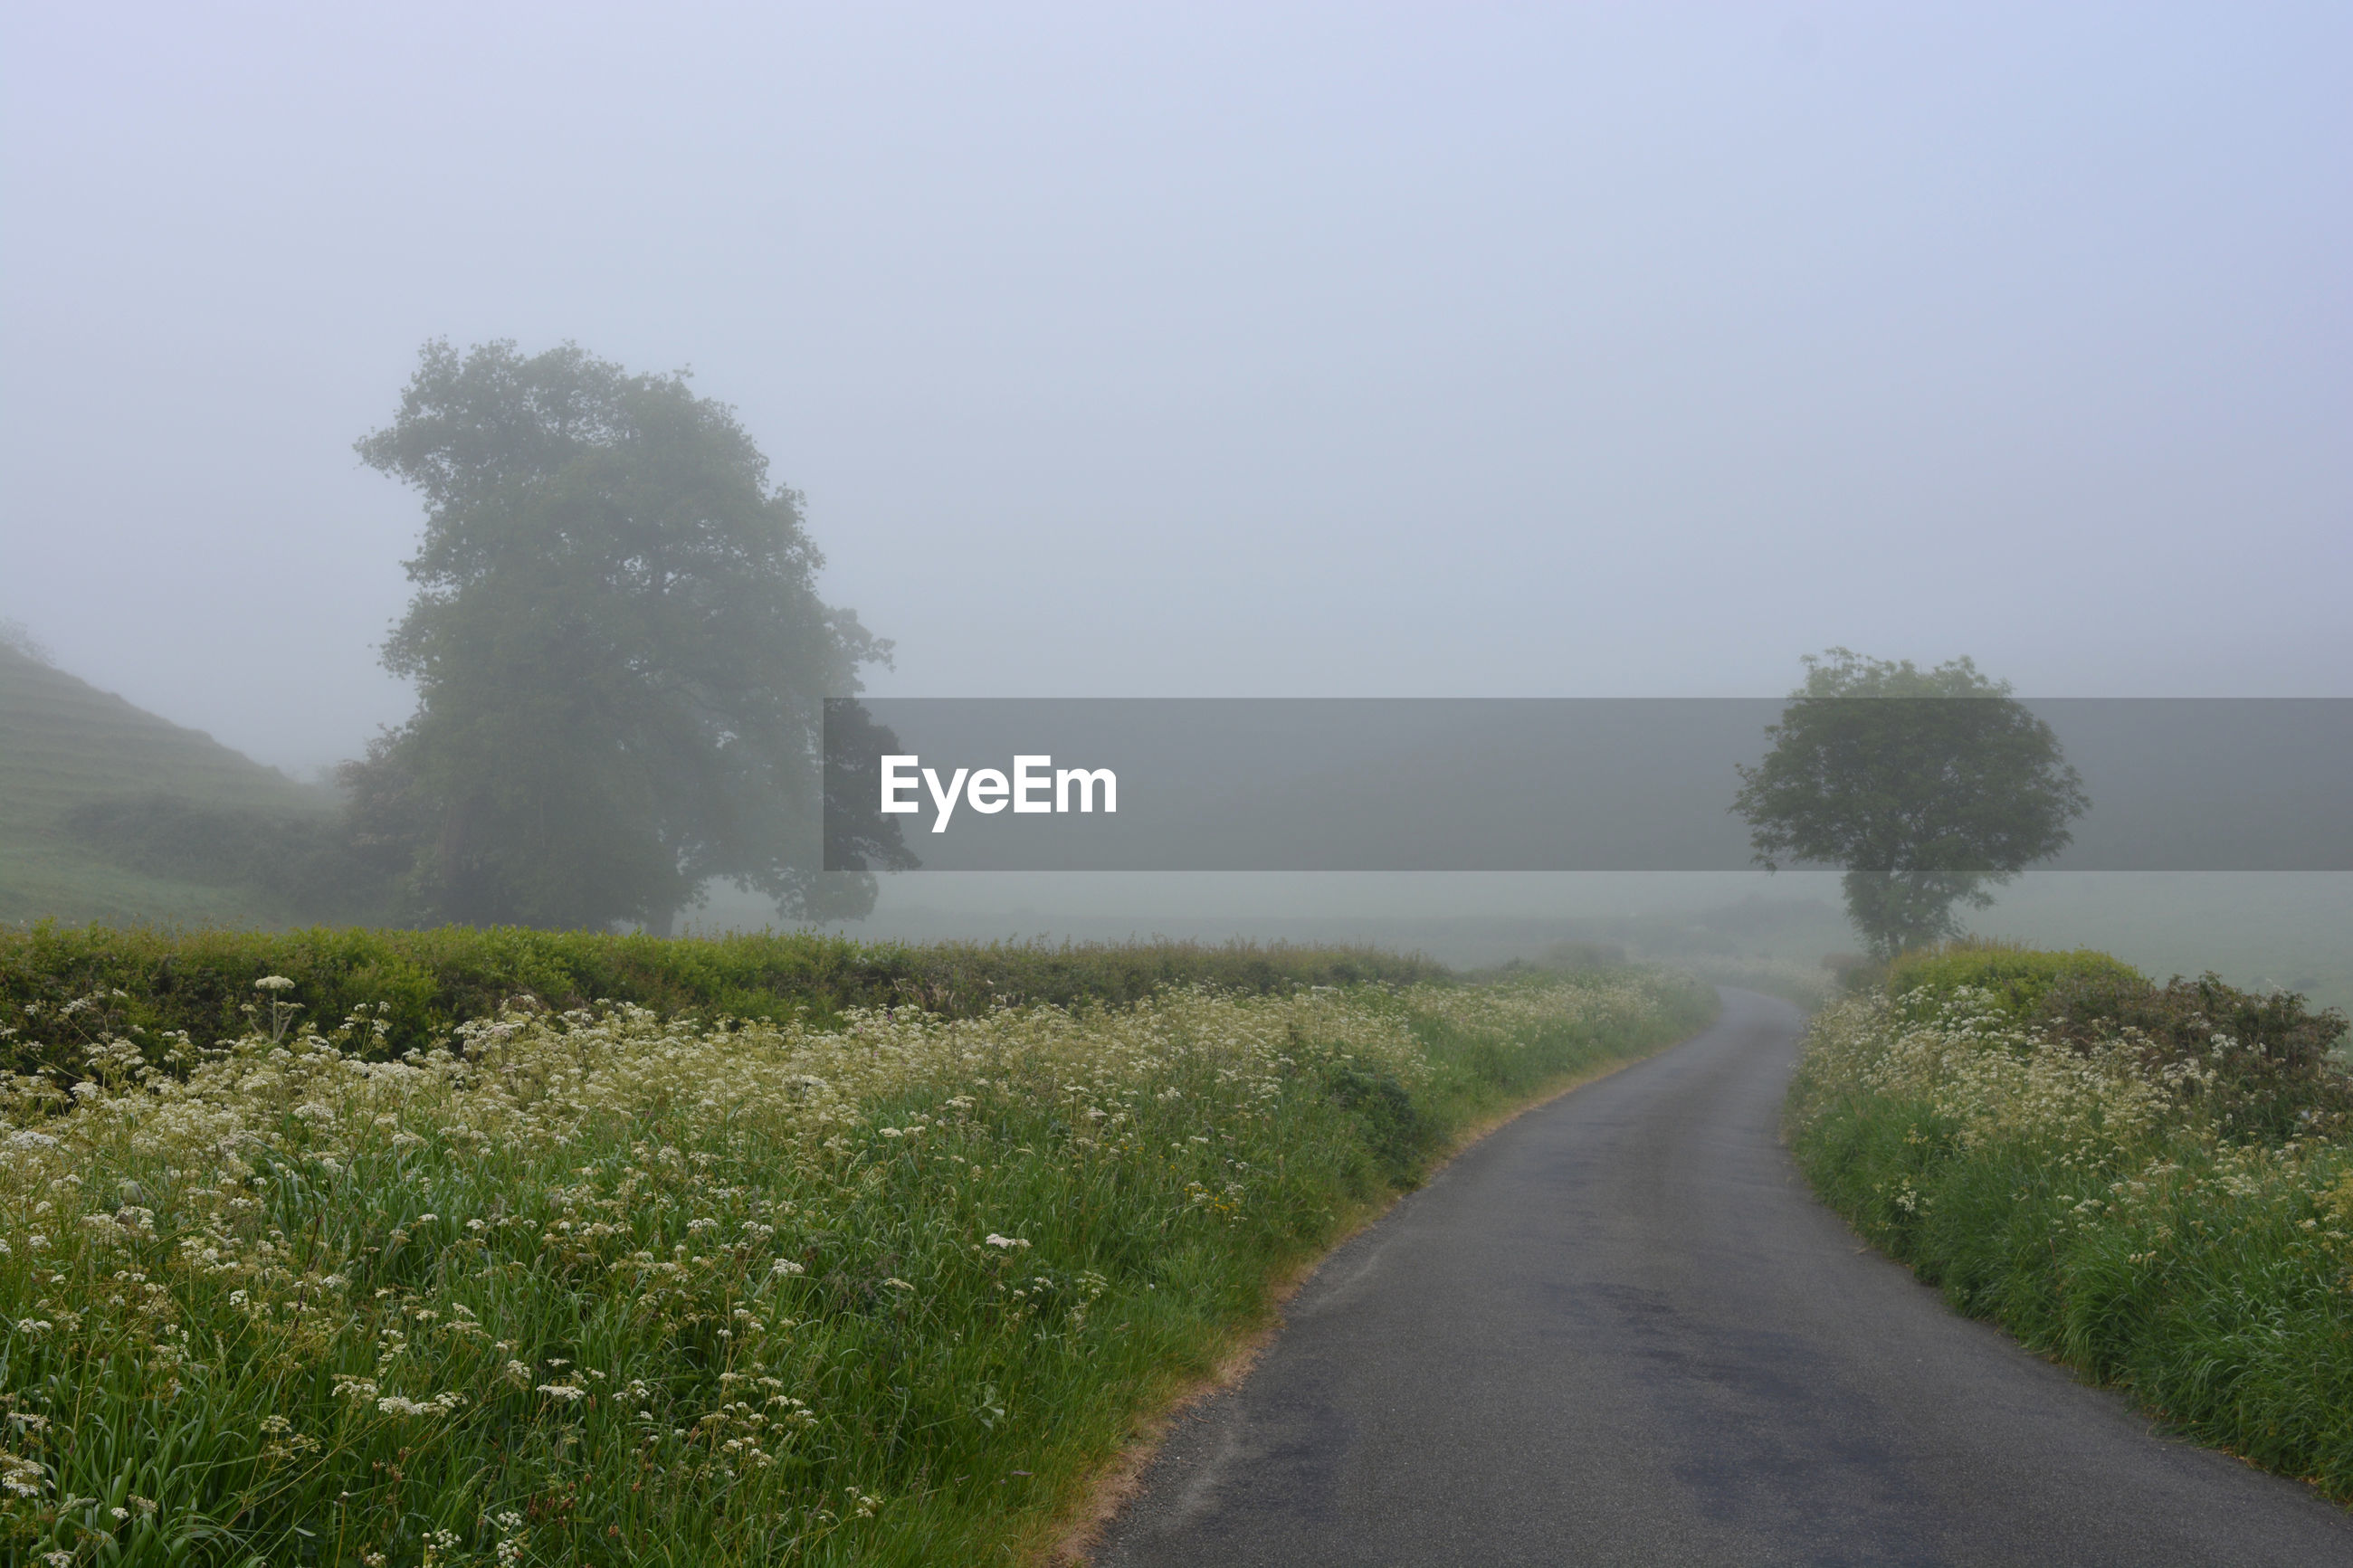 Foggy country lane in late spring, between oborne and poyntington, sherborne, dorset, england